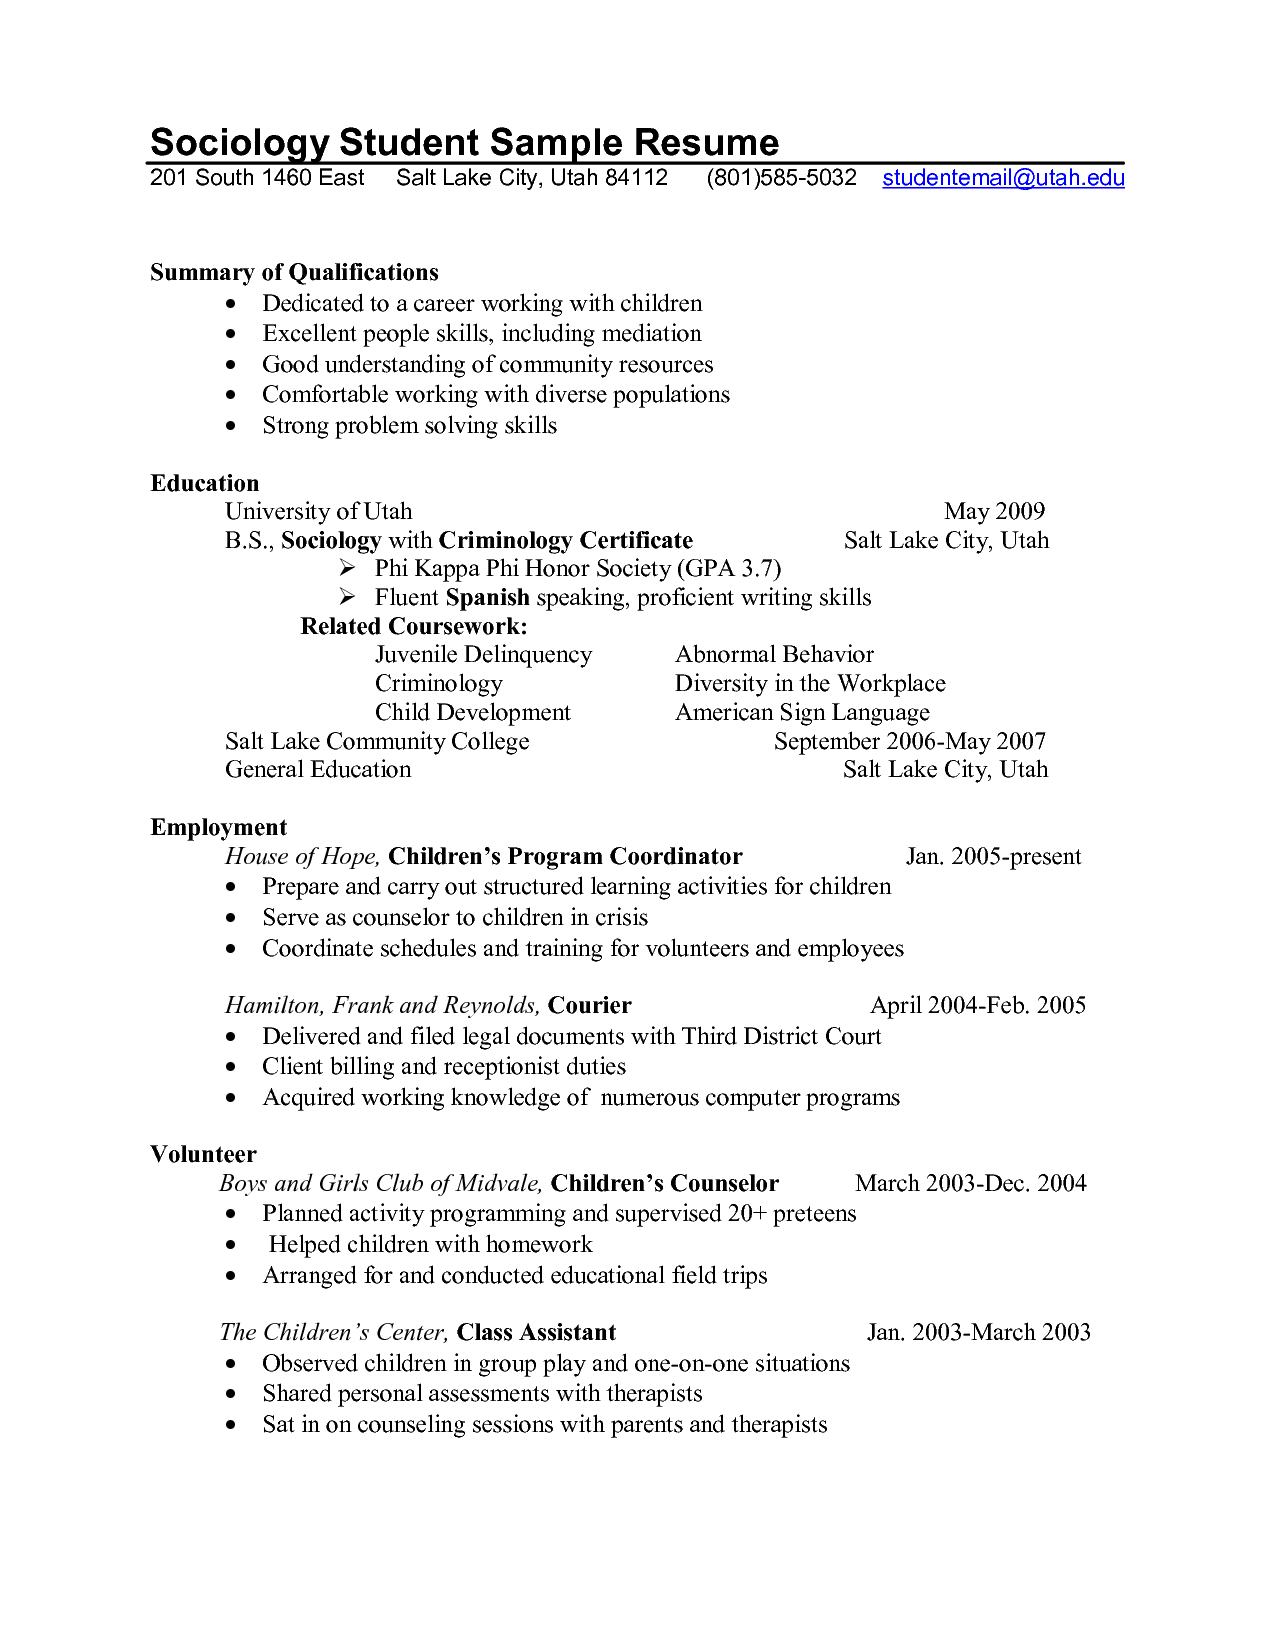 counselor resume  resume sample format also counselor resume sample head counselor resume httpexampleresumecvorgsamplehead professional school counselor resume sociology student sample resume